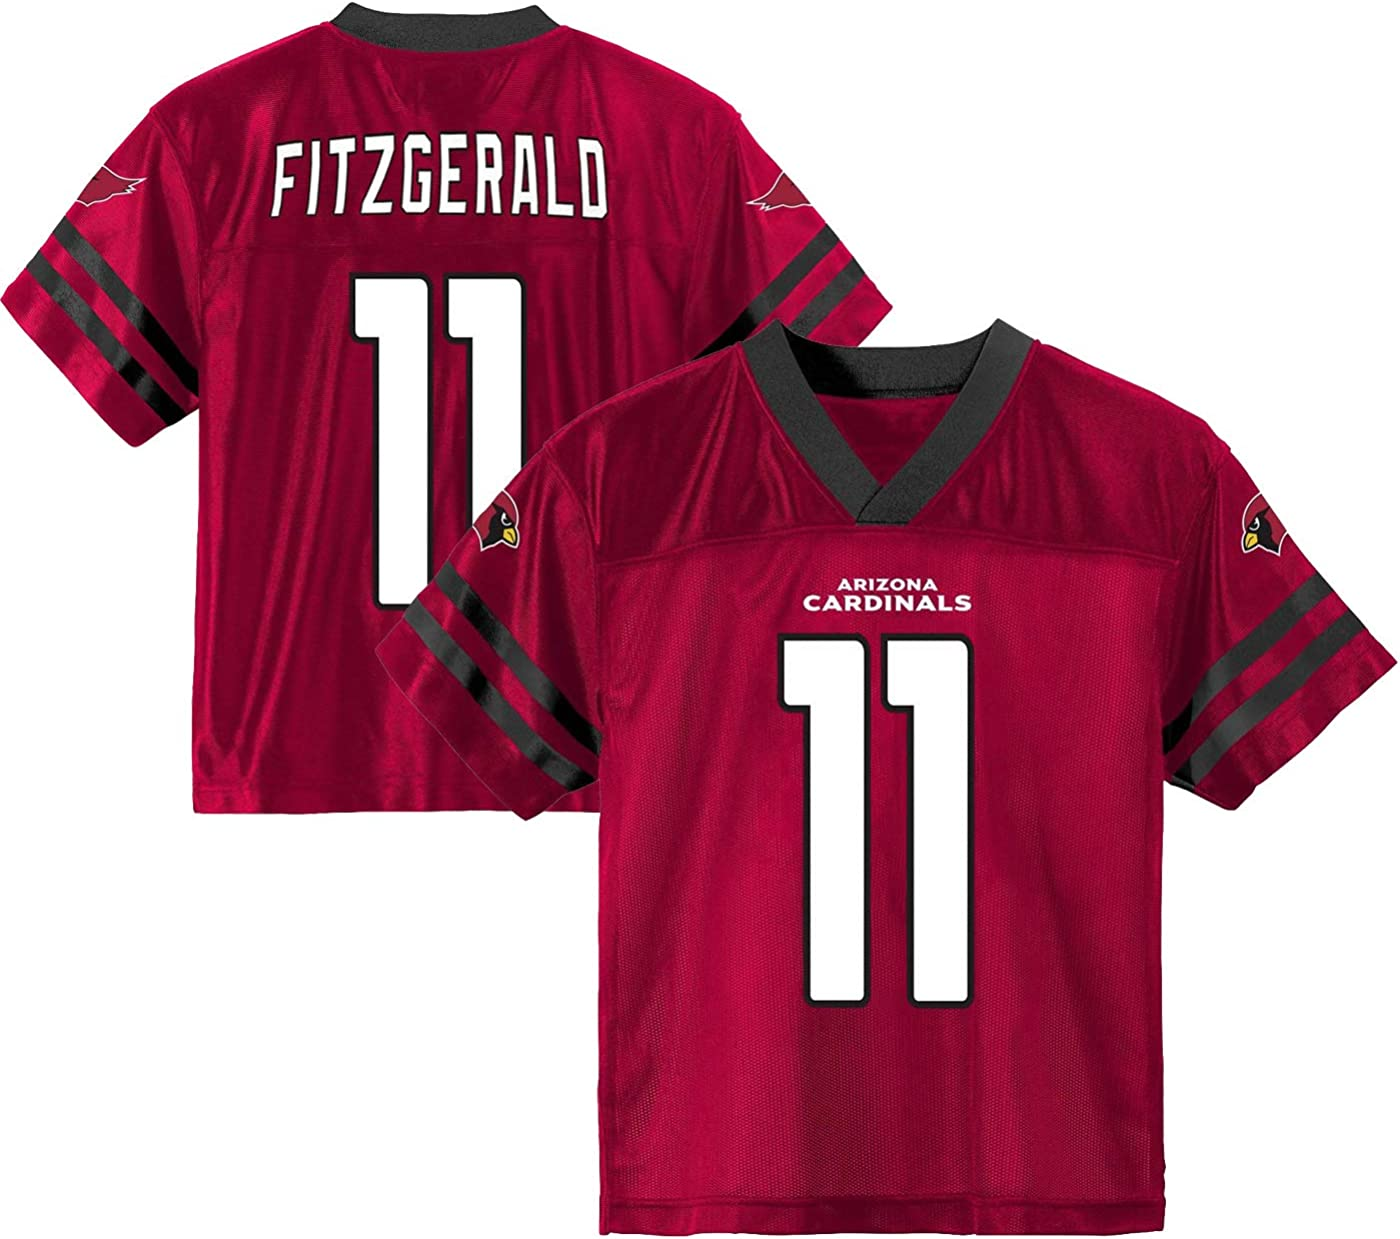 Outerstuff Larry Fitzgerald Arizona Cardinals Red Youth 8-20 Player Home Jersey